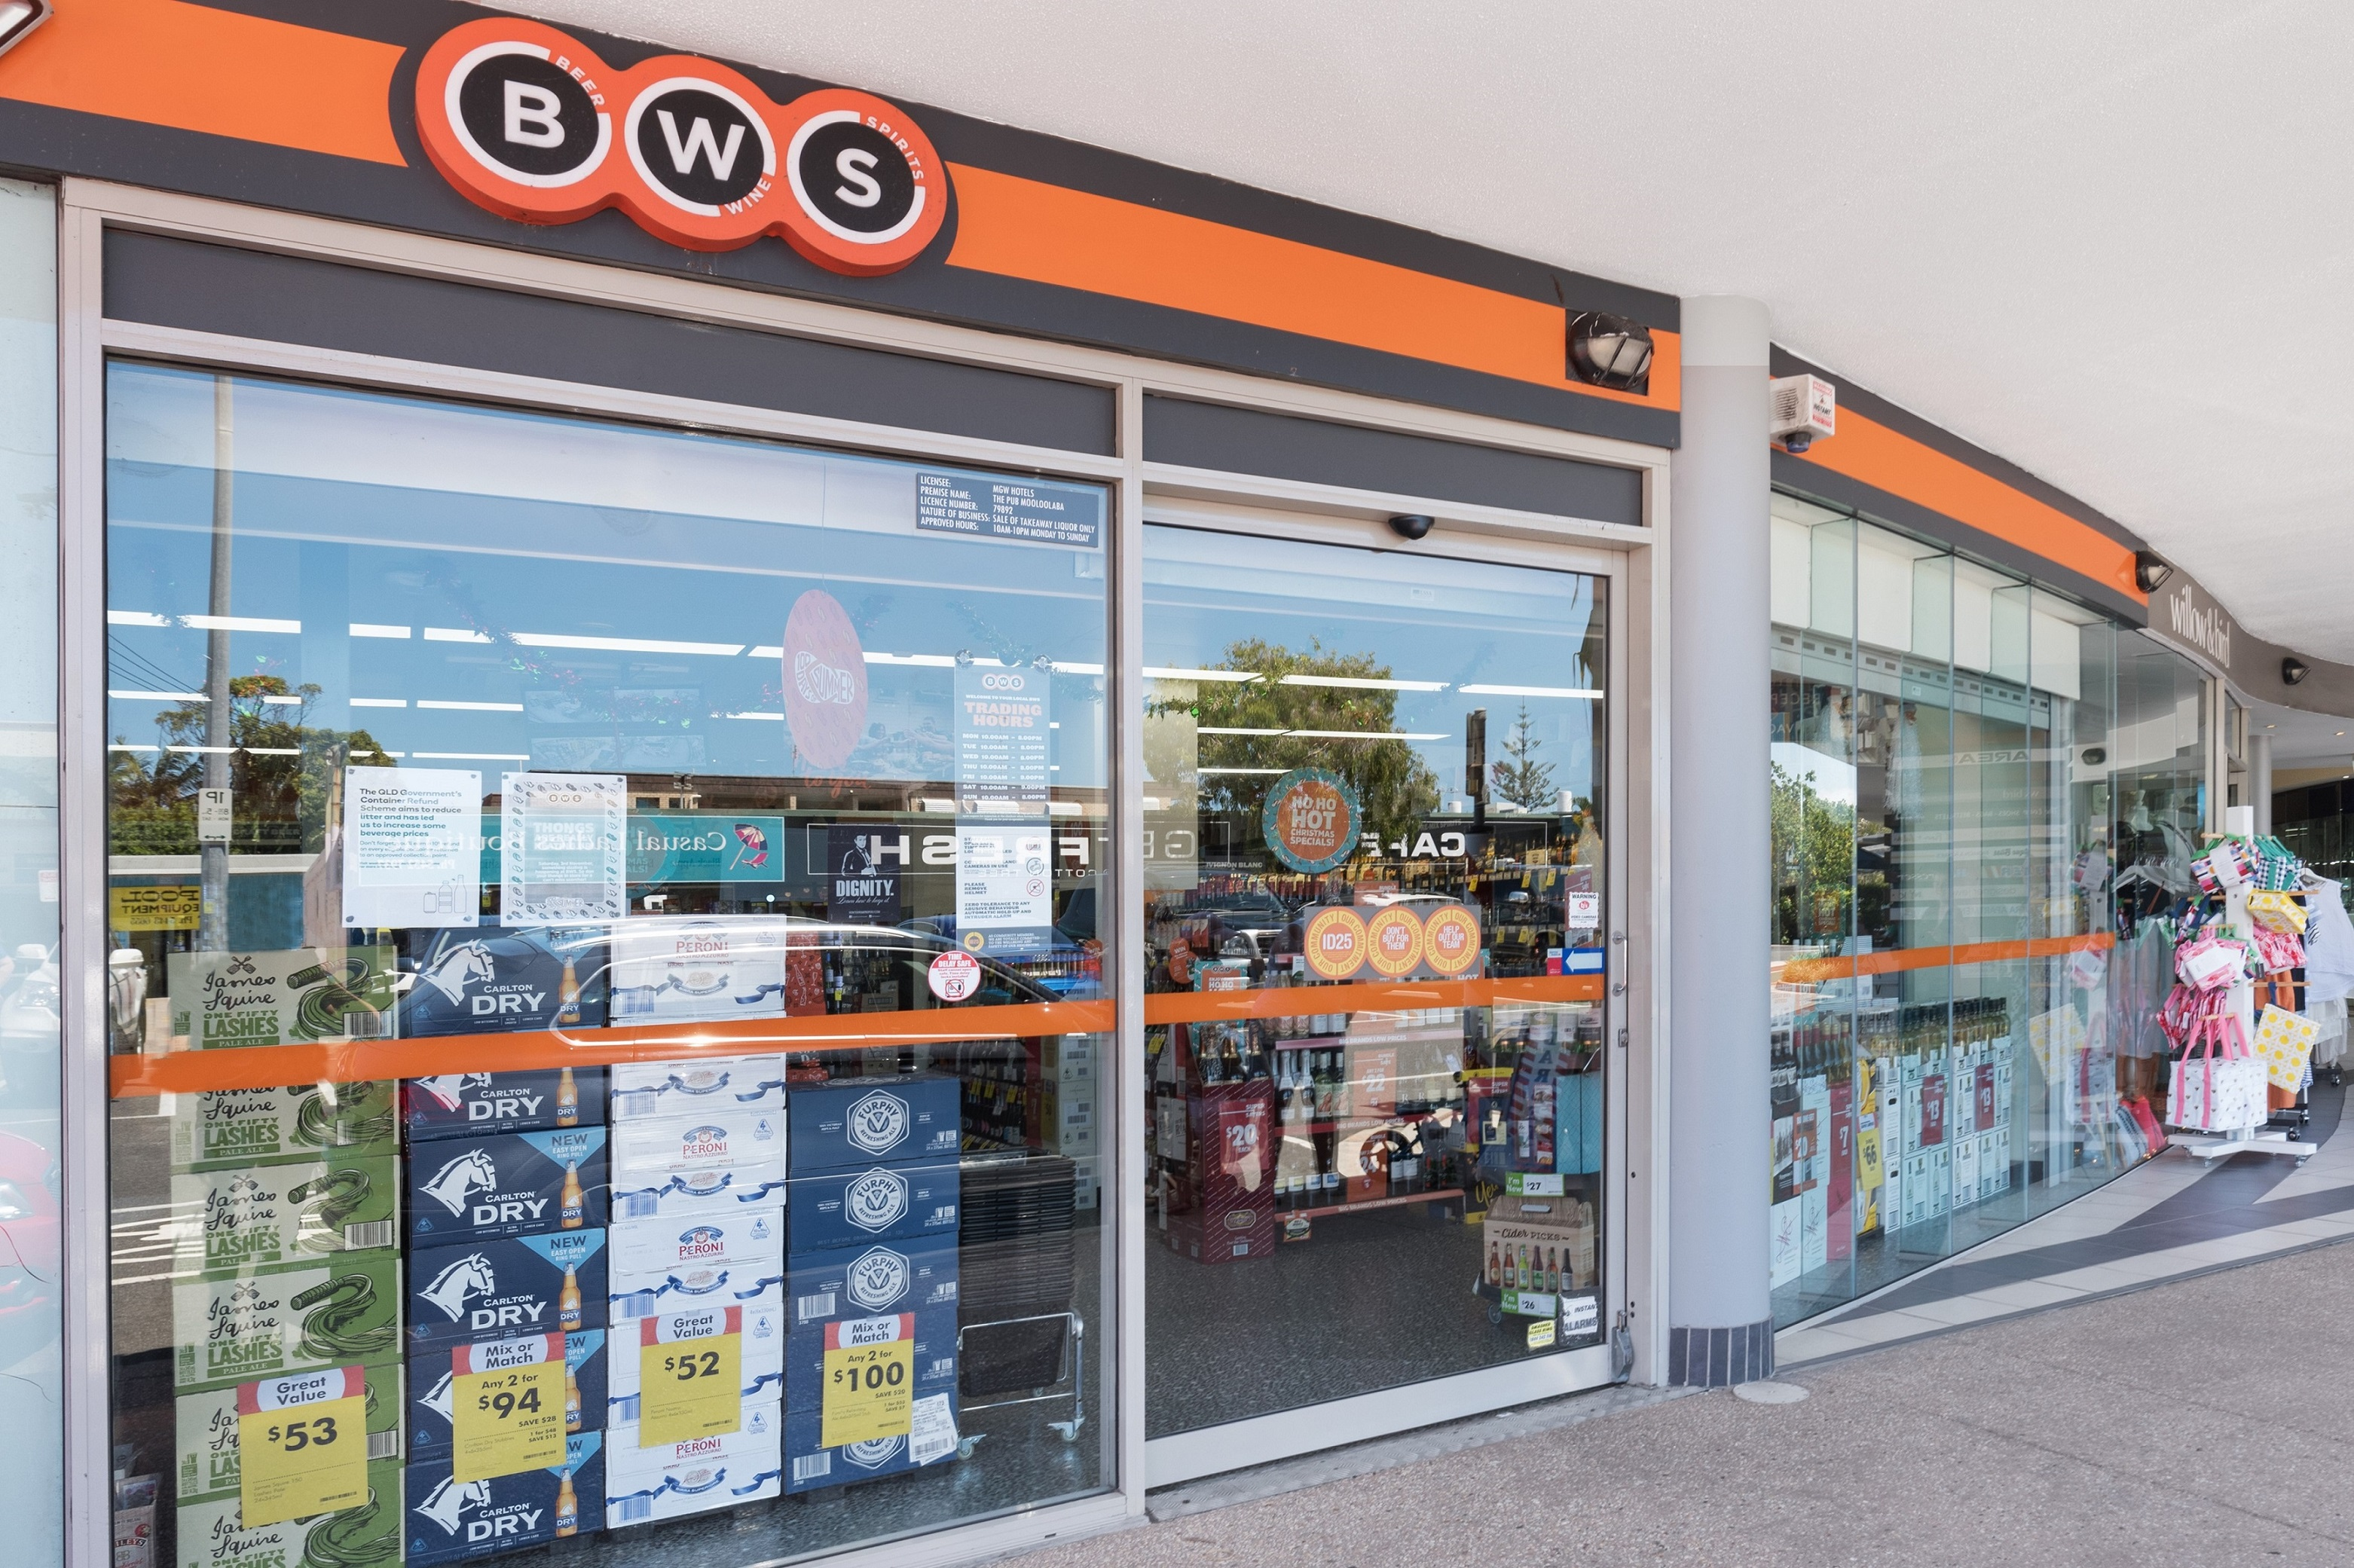 Prime Retail Investment – New 7 Year Lease to BWS – Tightly Held Tourism Hotspot